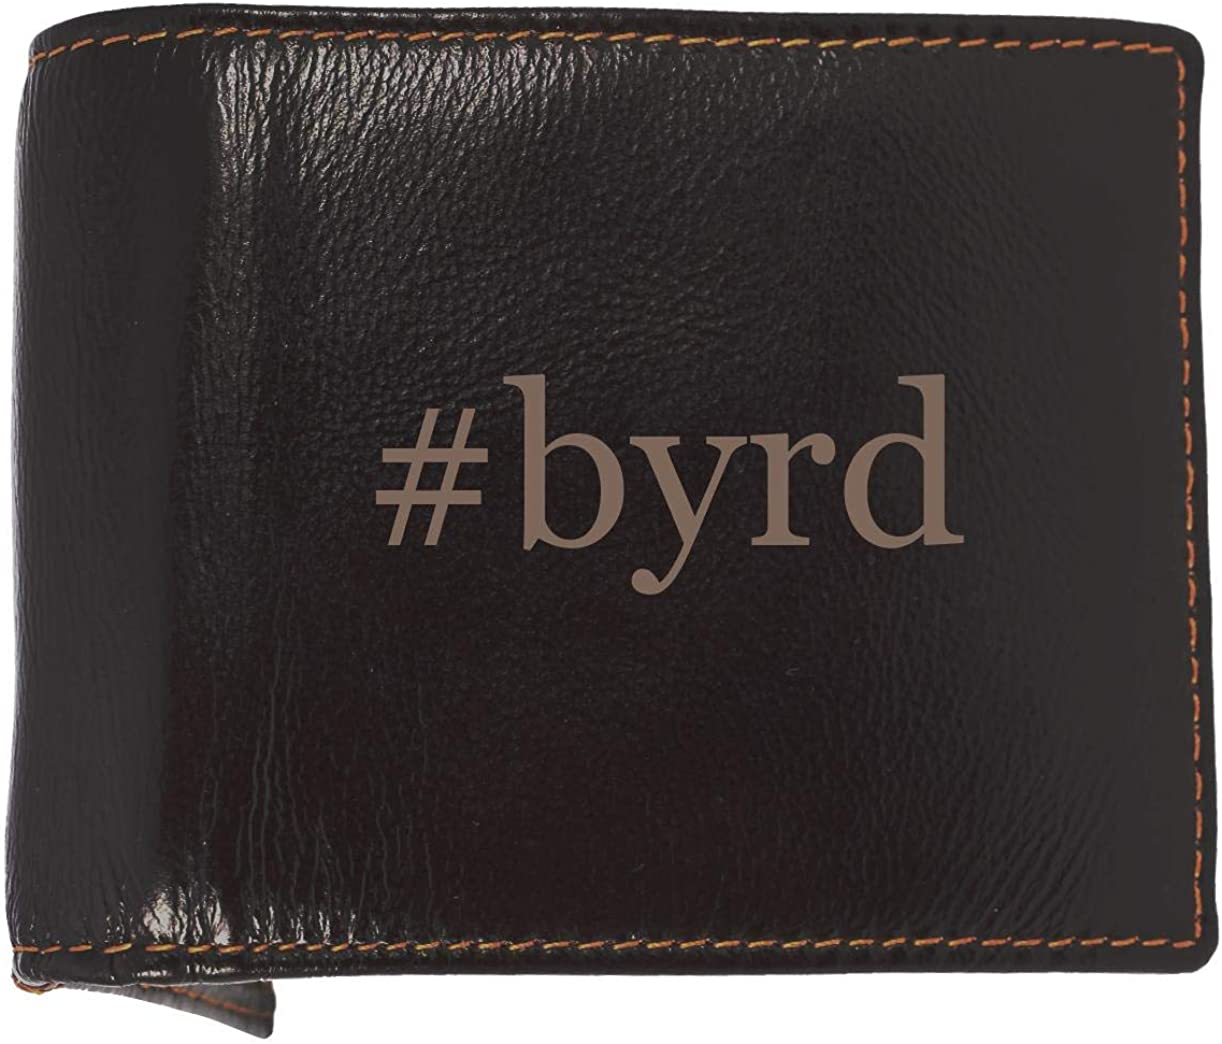 #byrd - Soft Hashtag Cowhide Genuine Engraved Bifold Leather Wallet